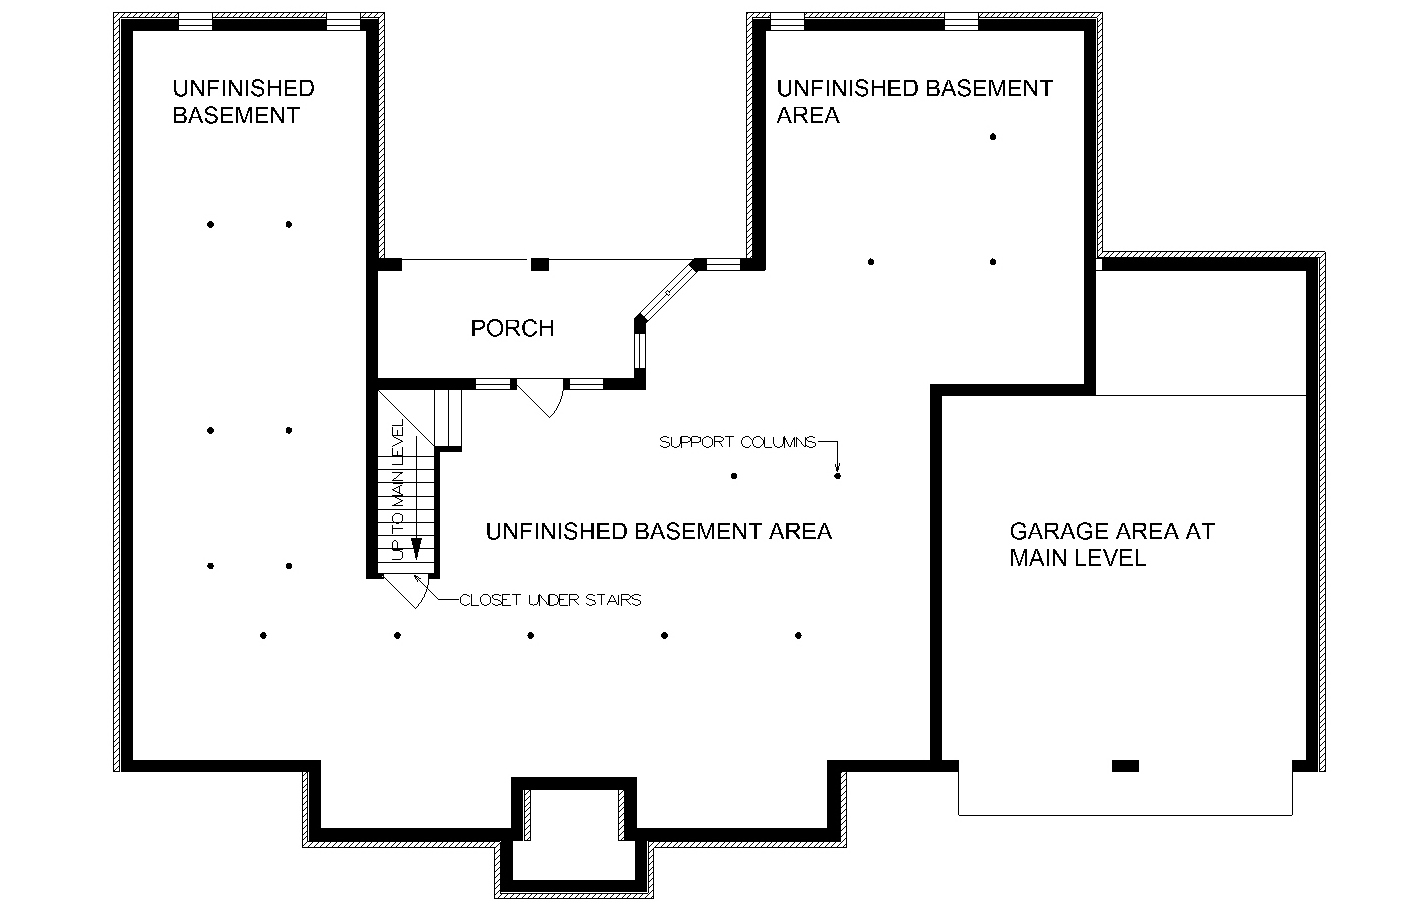 Optional Day Light Basement Foundation image of Greenstone-1904 House Plan